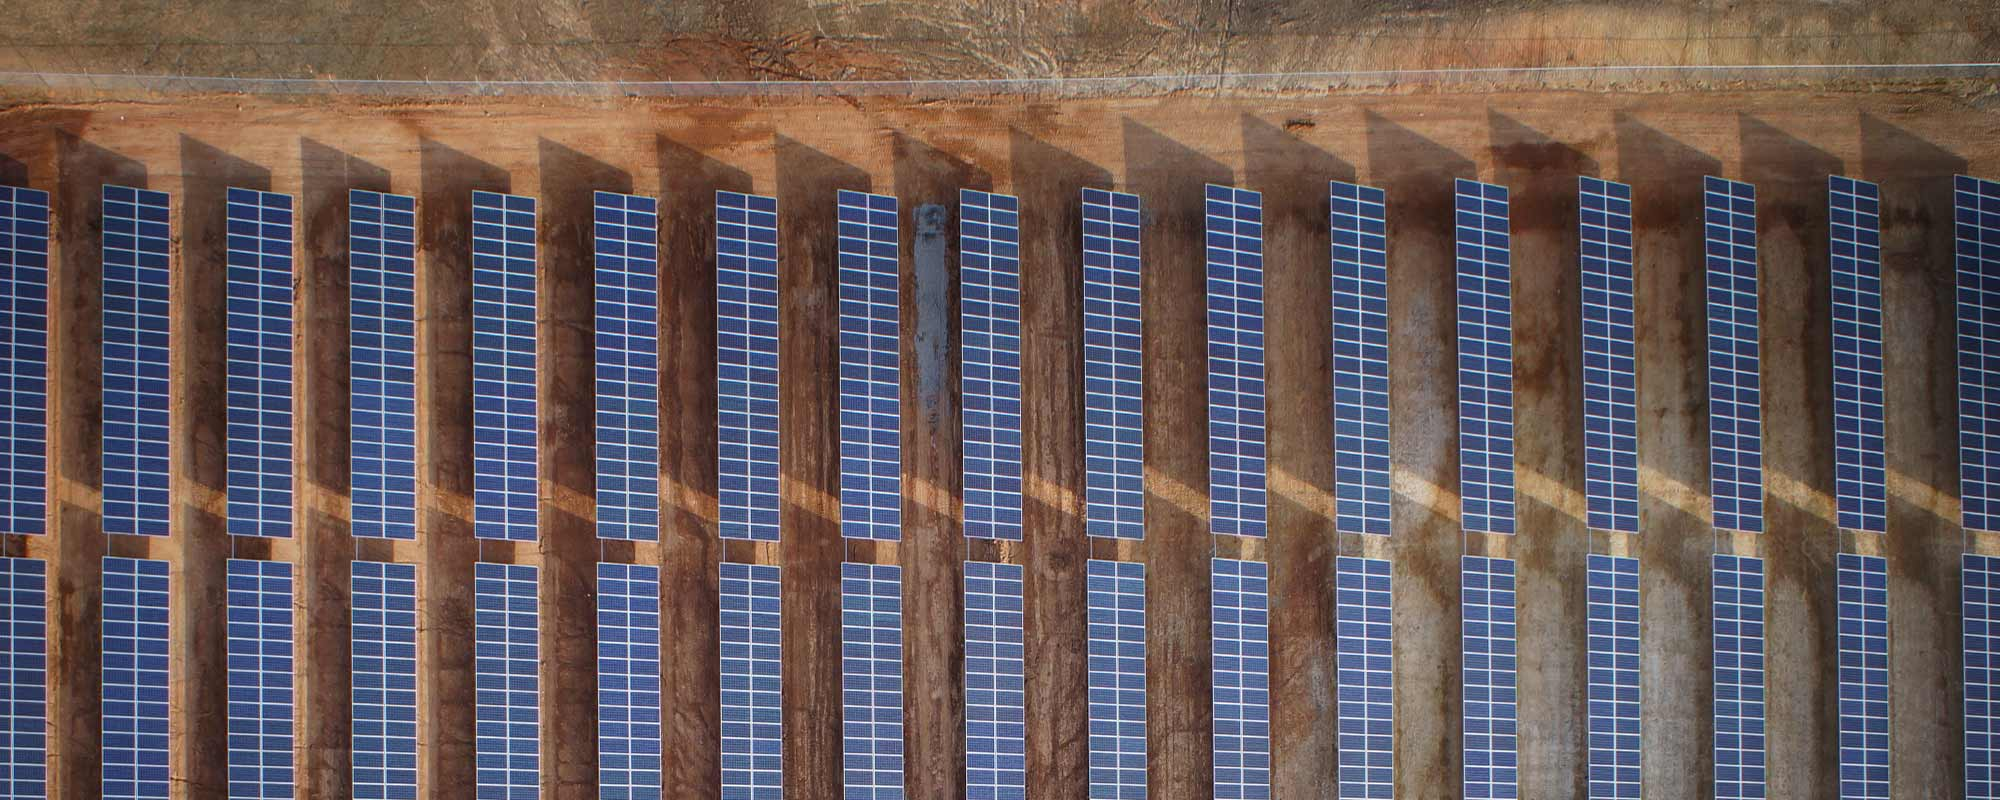 Brilliant Rack – Solutions for Ground-Mounted Solar Projects